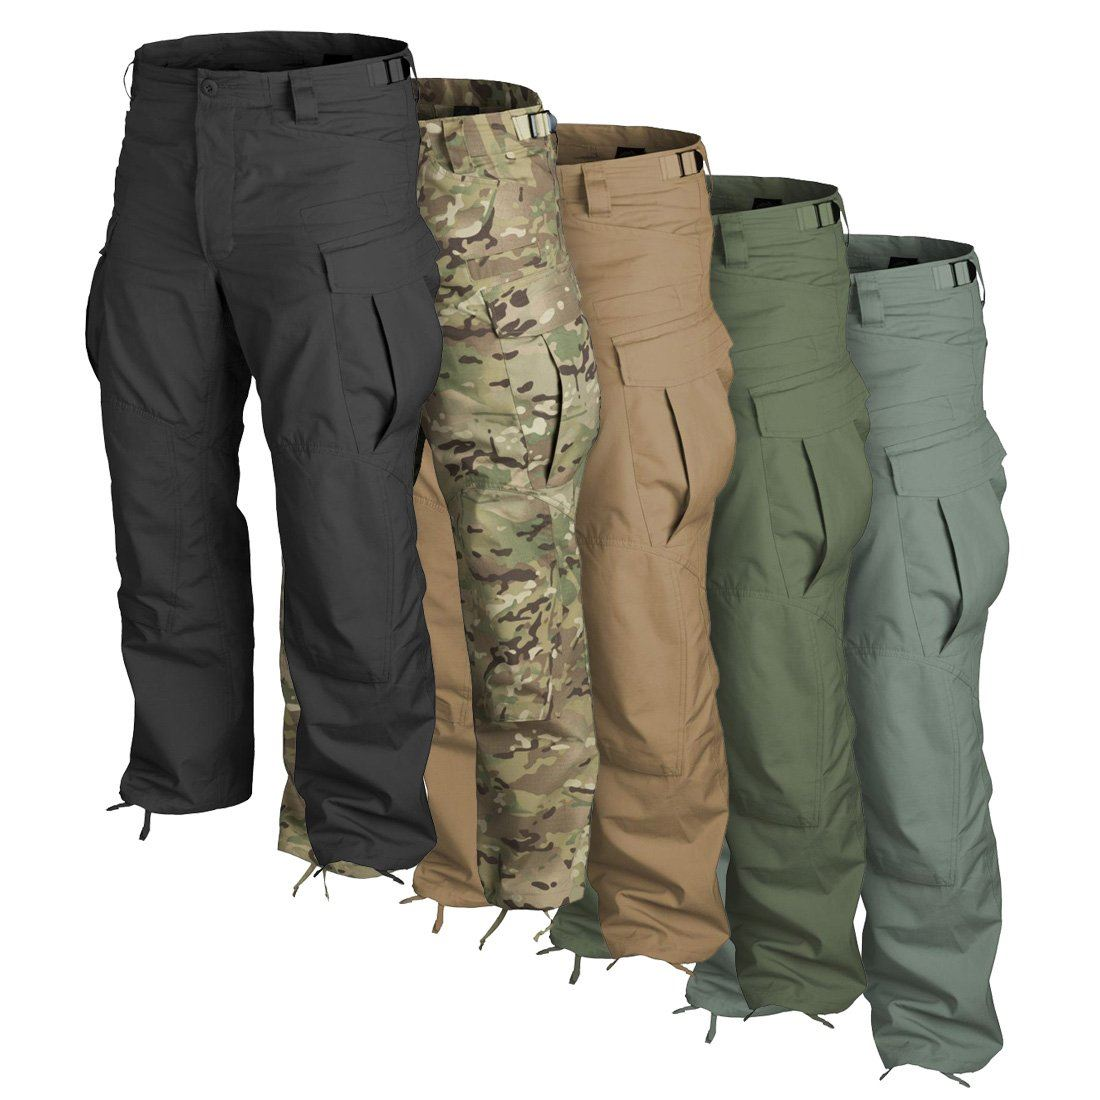 Based on the classic Special Forces Uniform (SFU) design, the SFU NEXT trousers are made of durable and hard-wearing cotton Ripstop material and feature 9 easy accessible pockets, reinforced seat and knees, knee pads compartments, adjustable waist and cuffs, and D-rings for optional attachments/5(2).